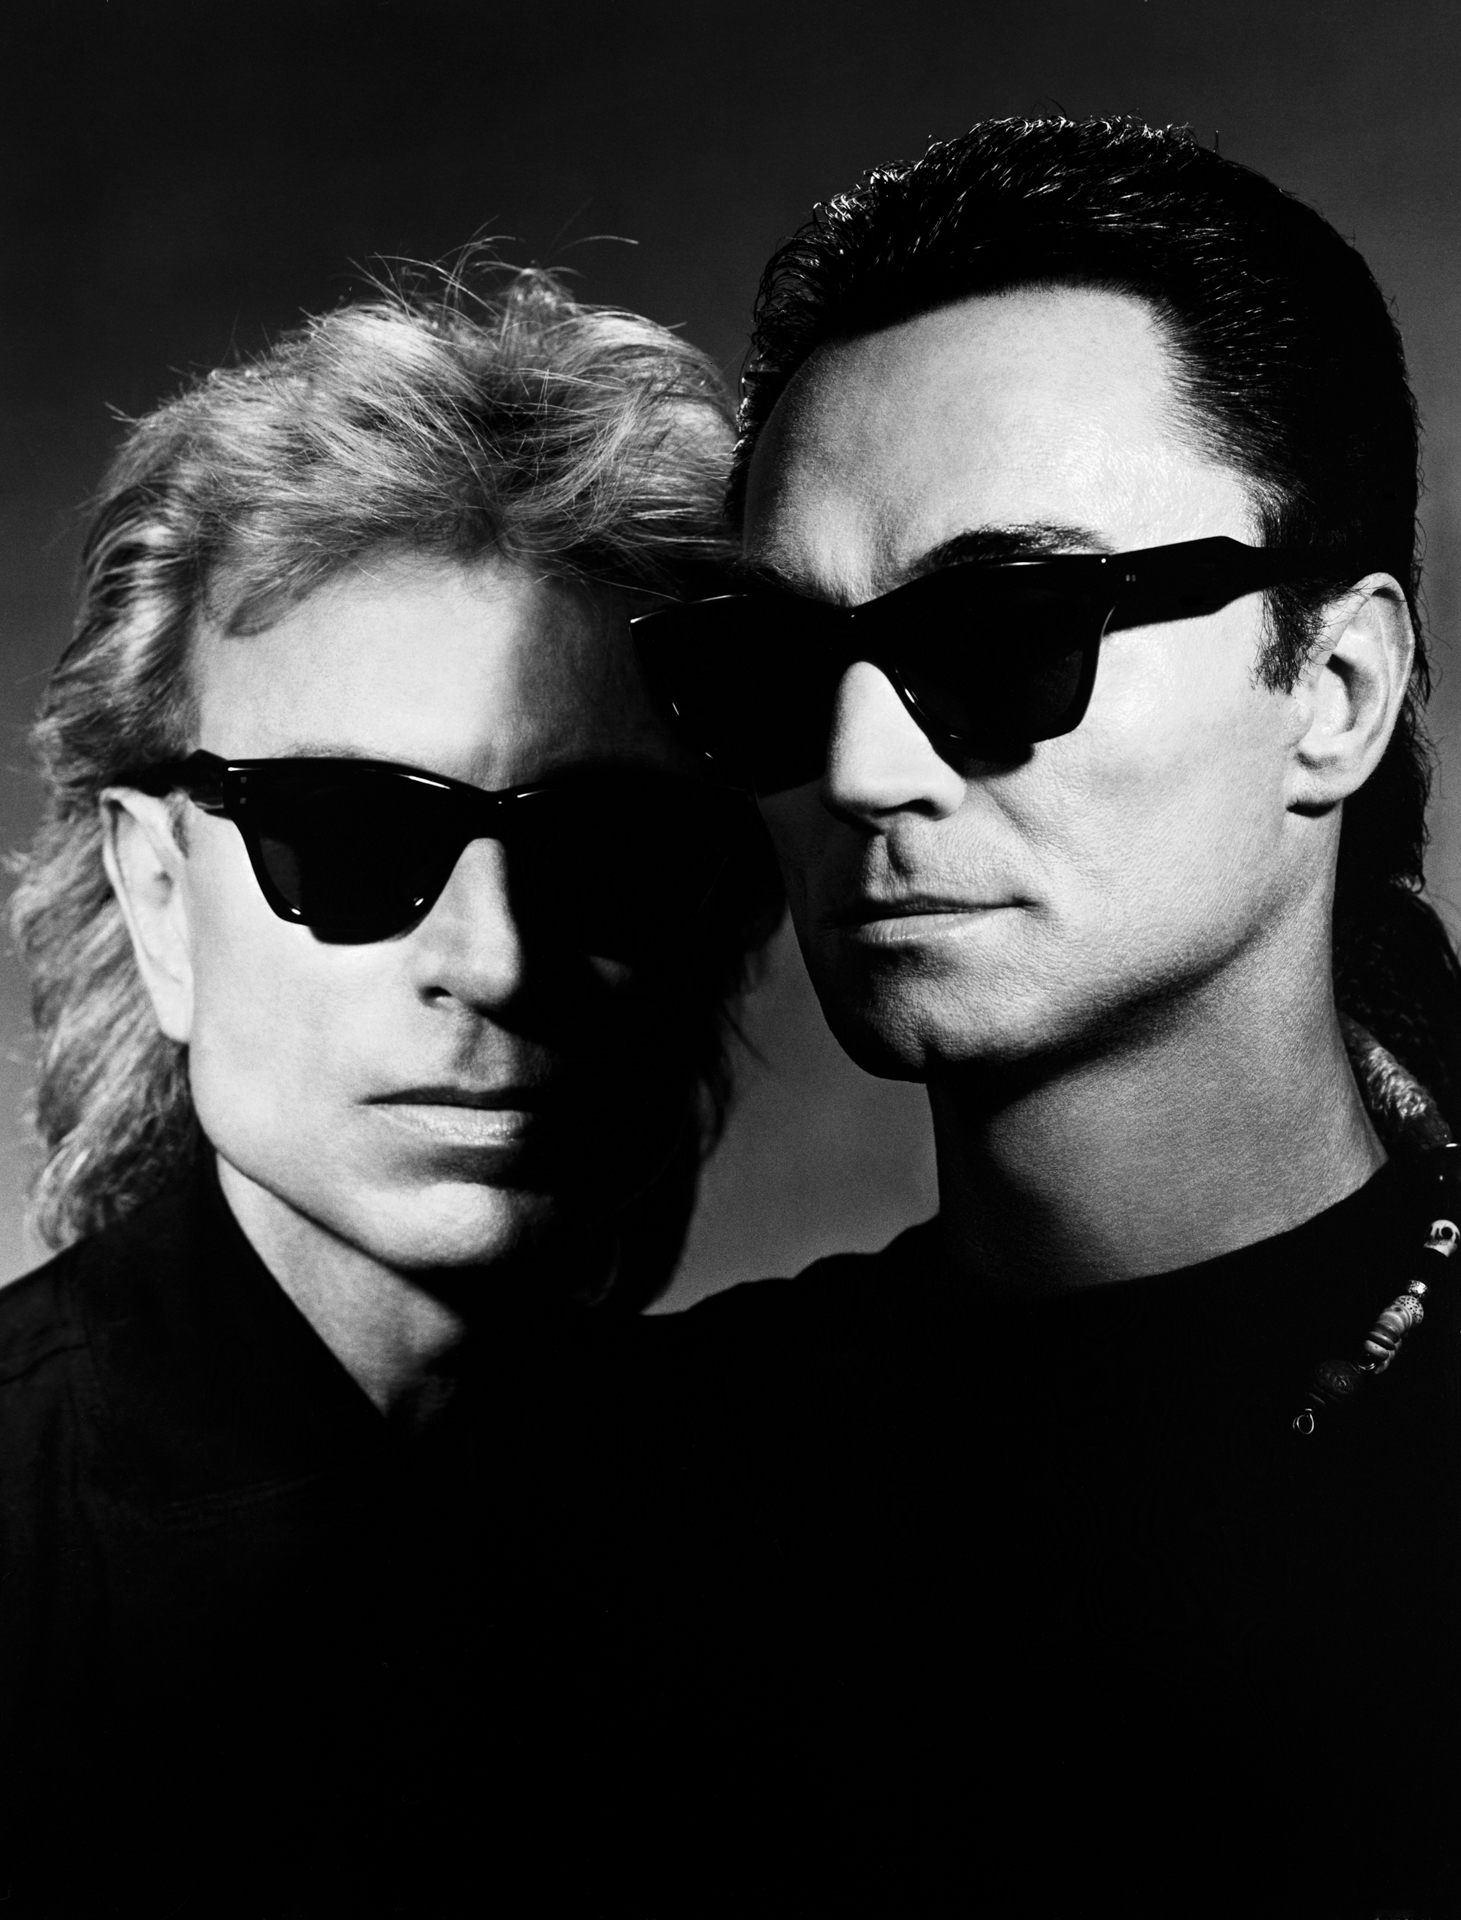 Siegfried_and_Roy.tif